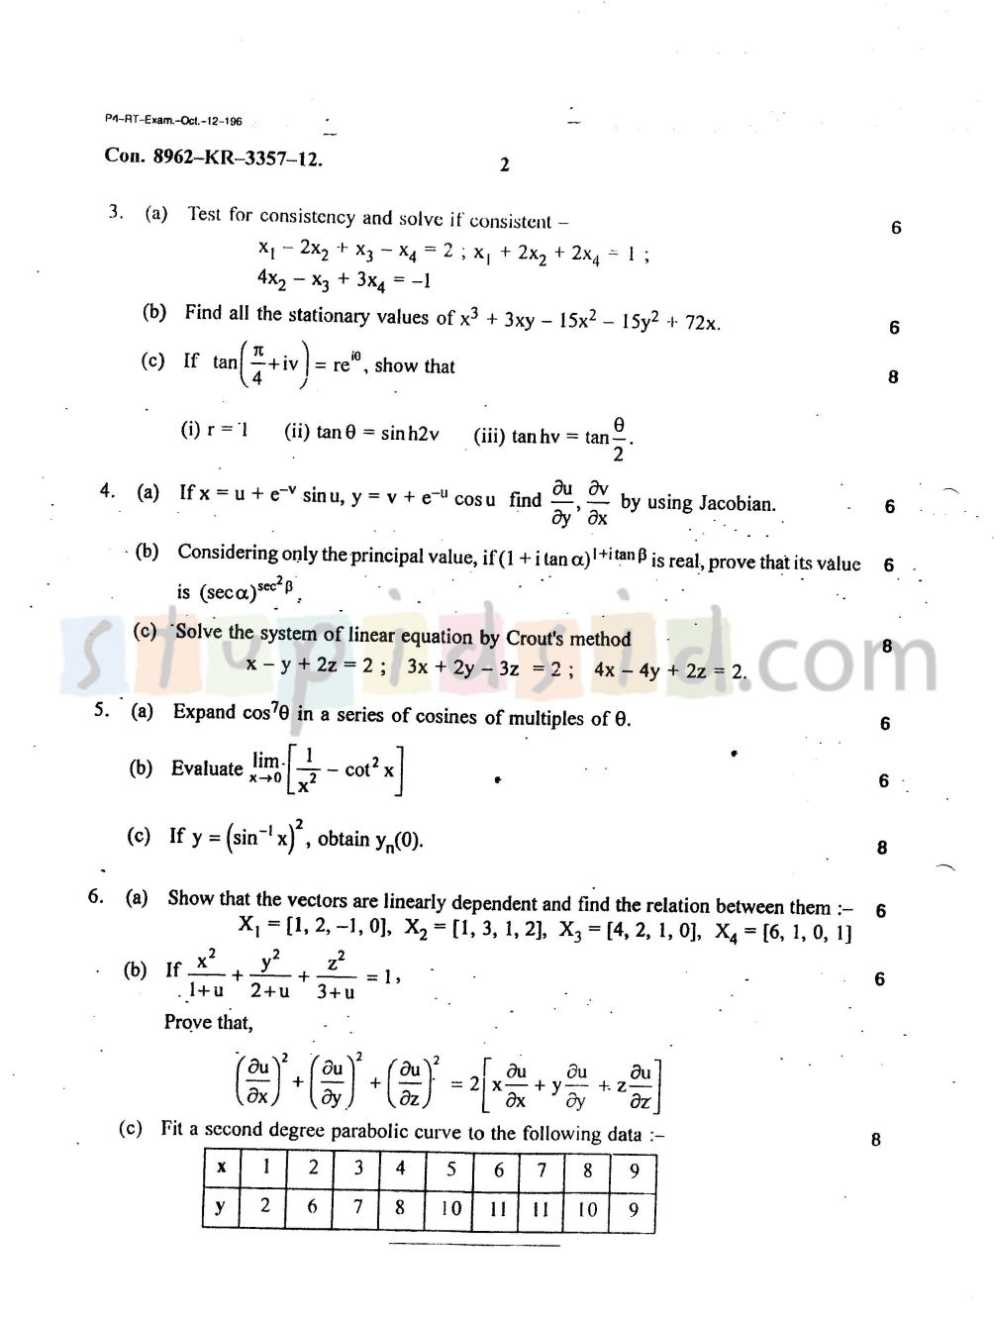 Mumbai university engineering solved question papers 2018 2019 question paper malvernweather Gallery